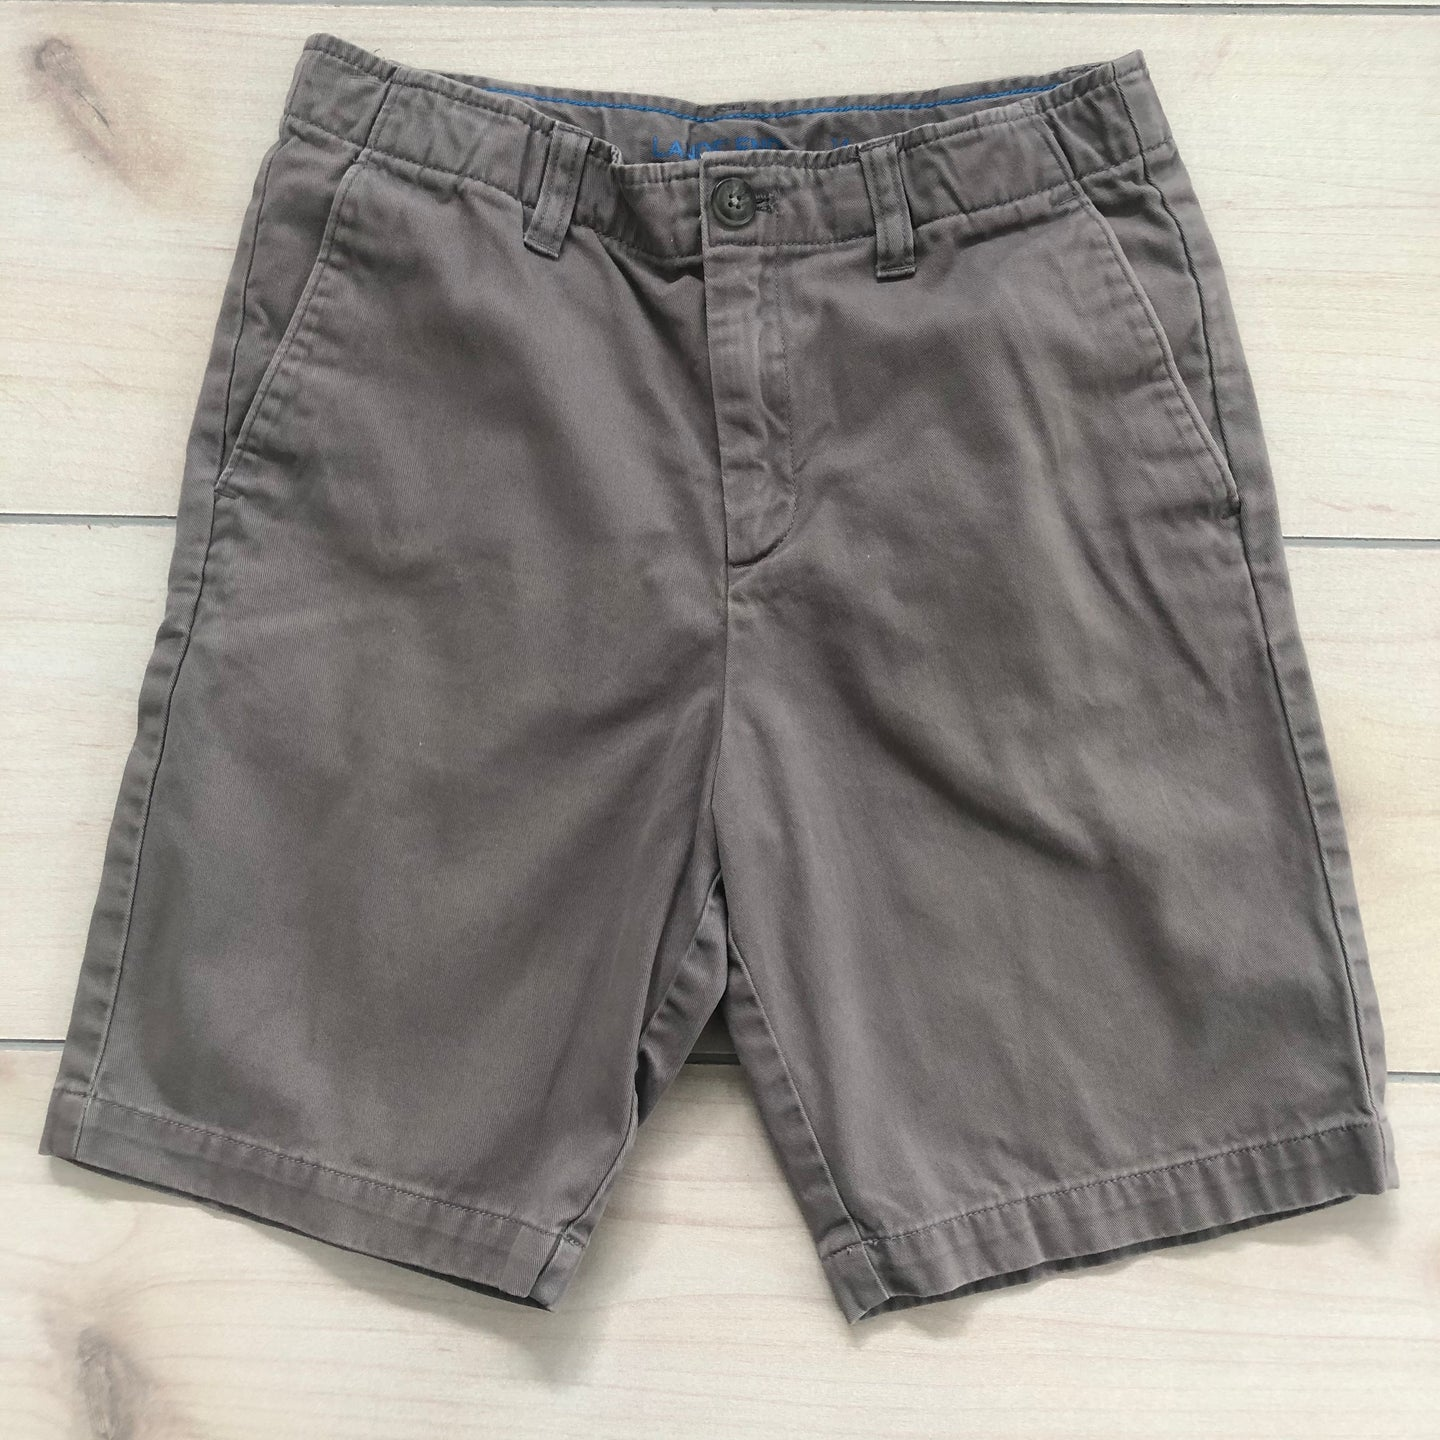 Lands End Gray Shorts Size 14